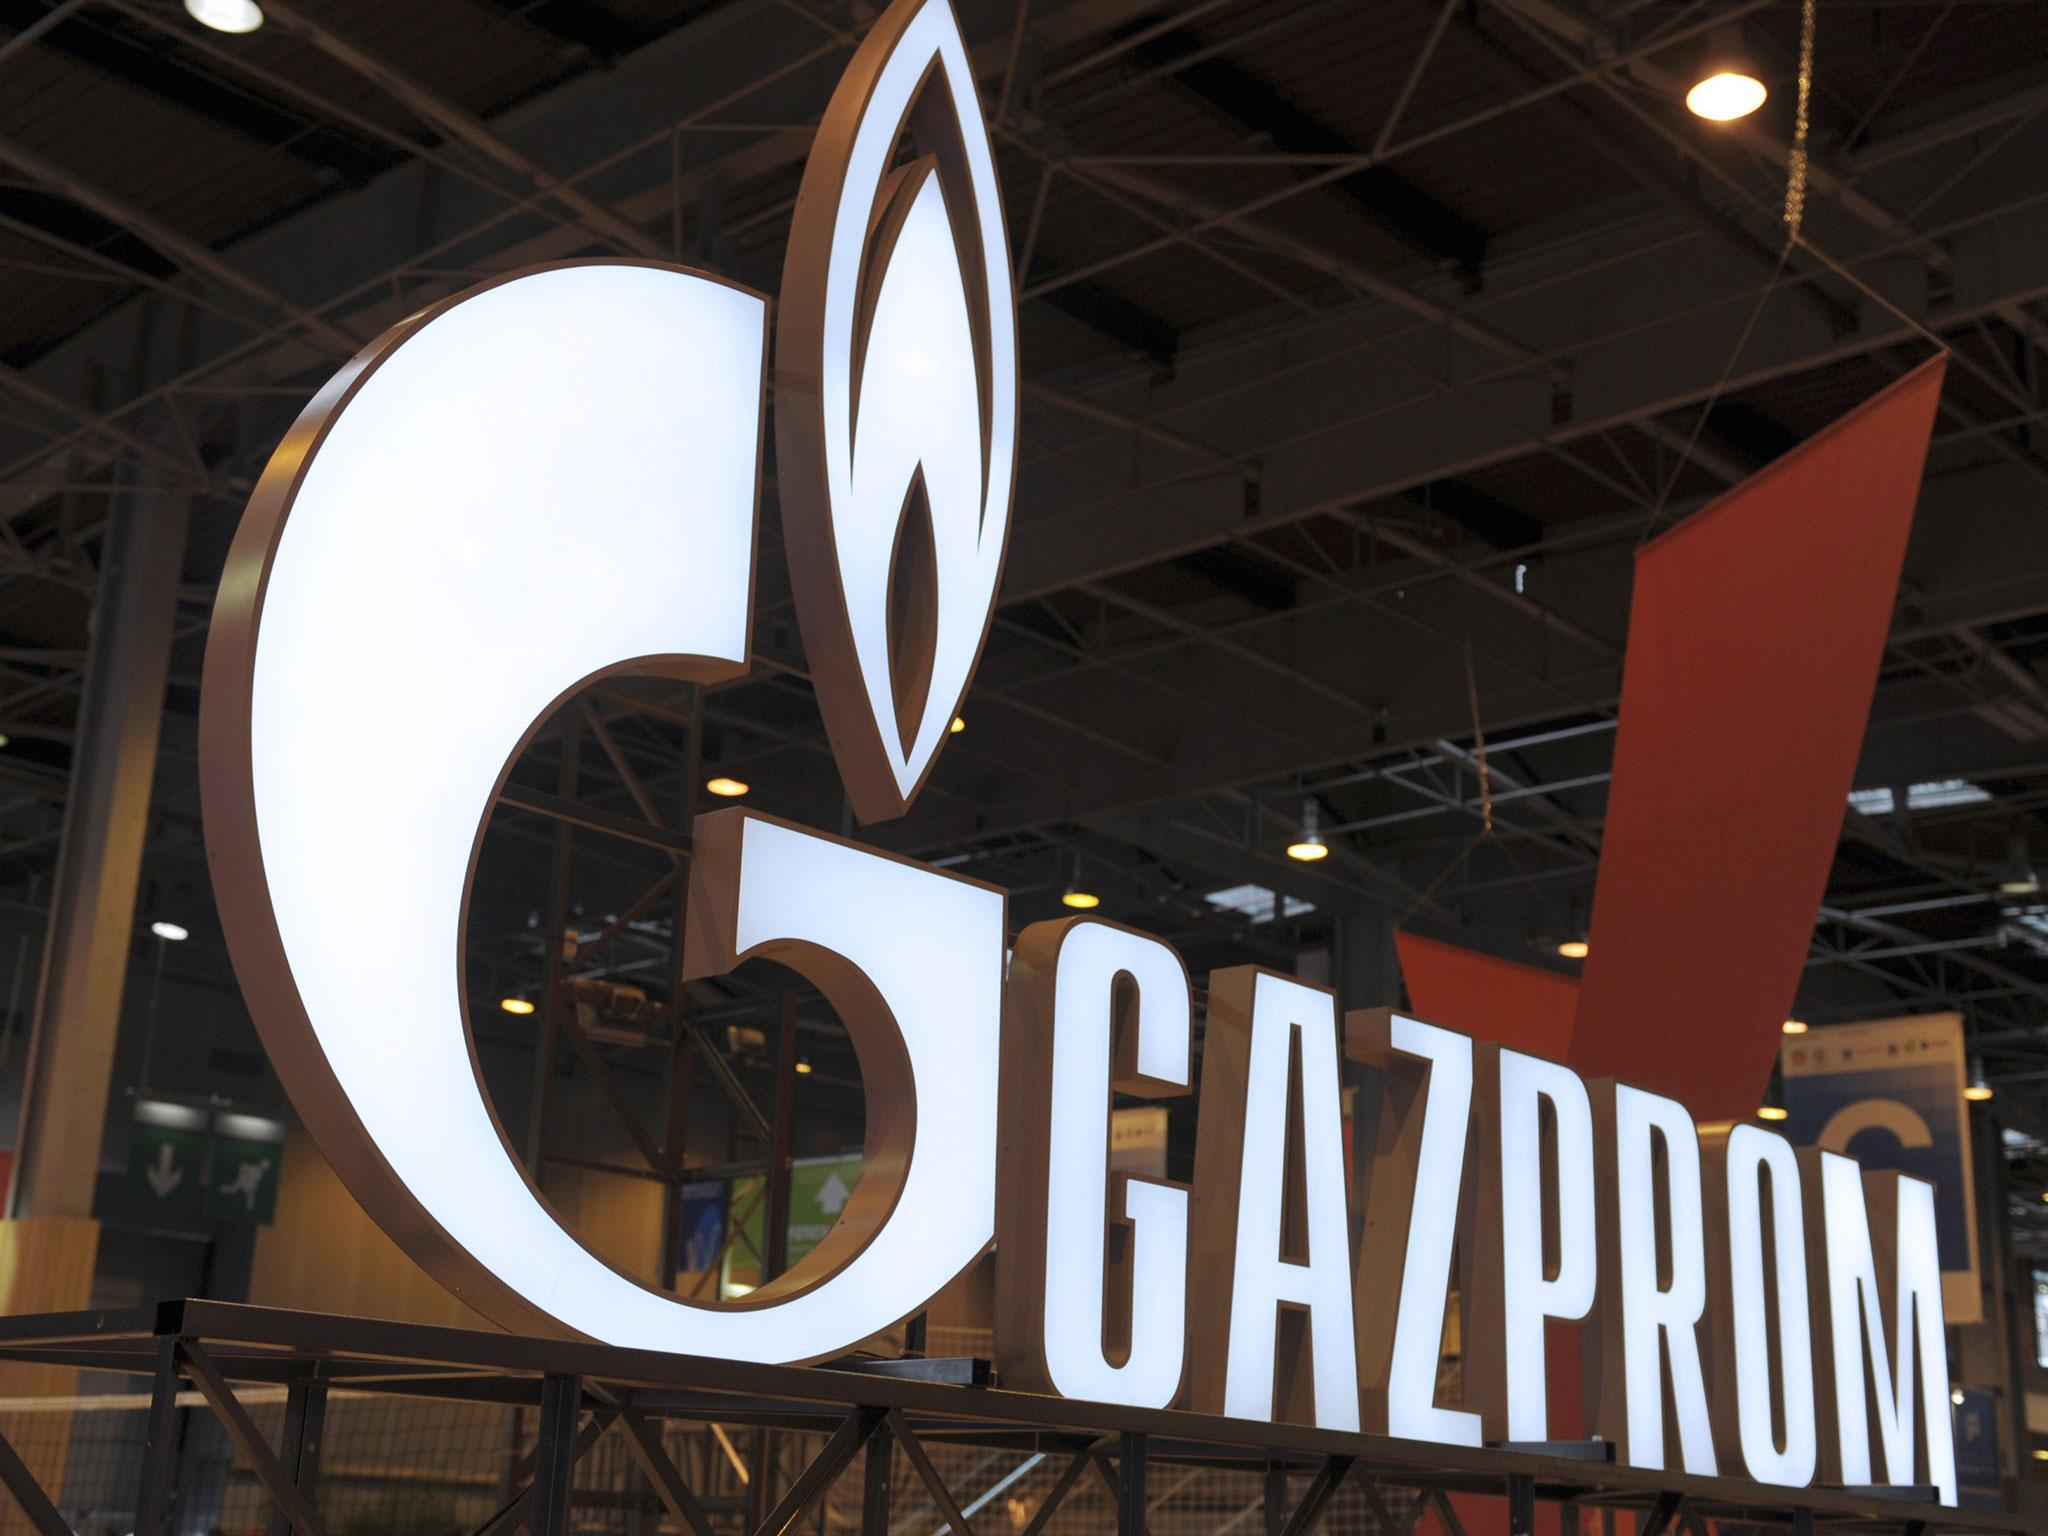 Gazprom could not find the right people